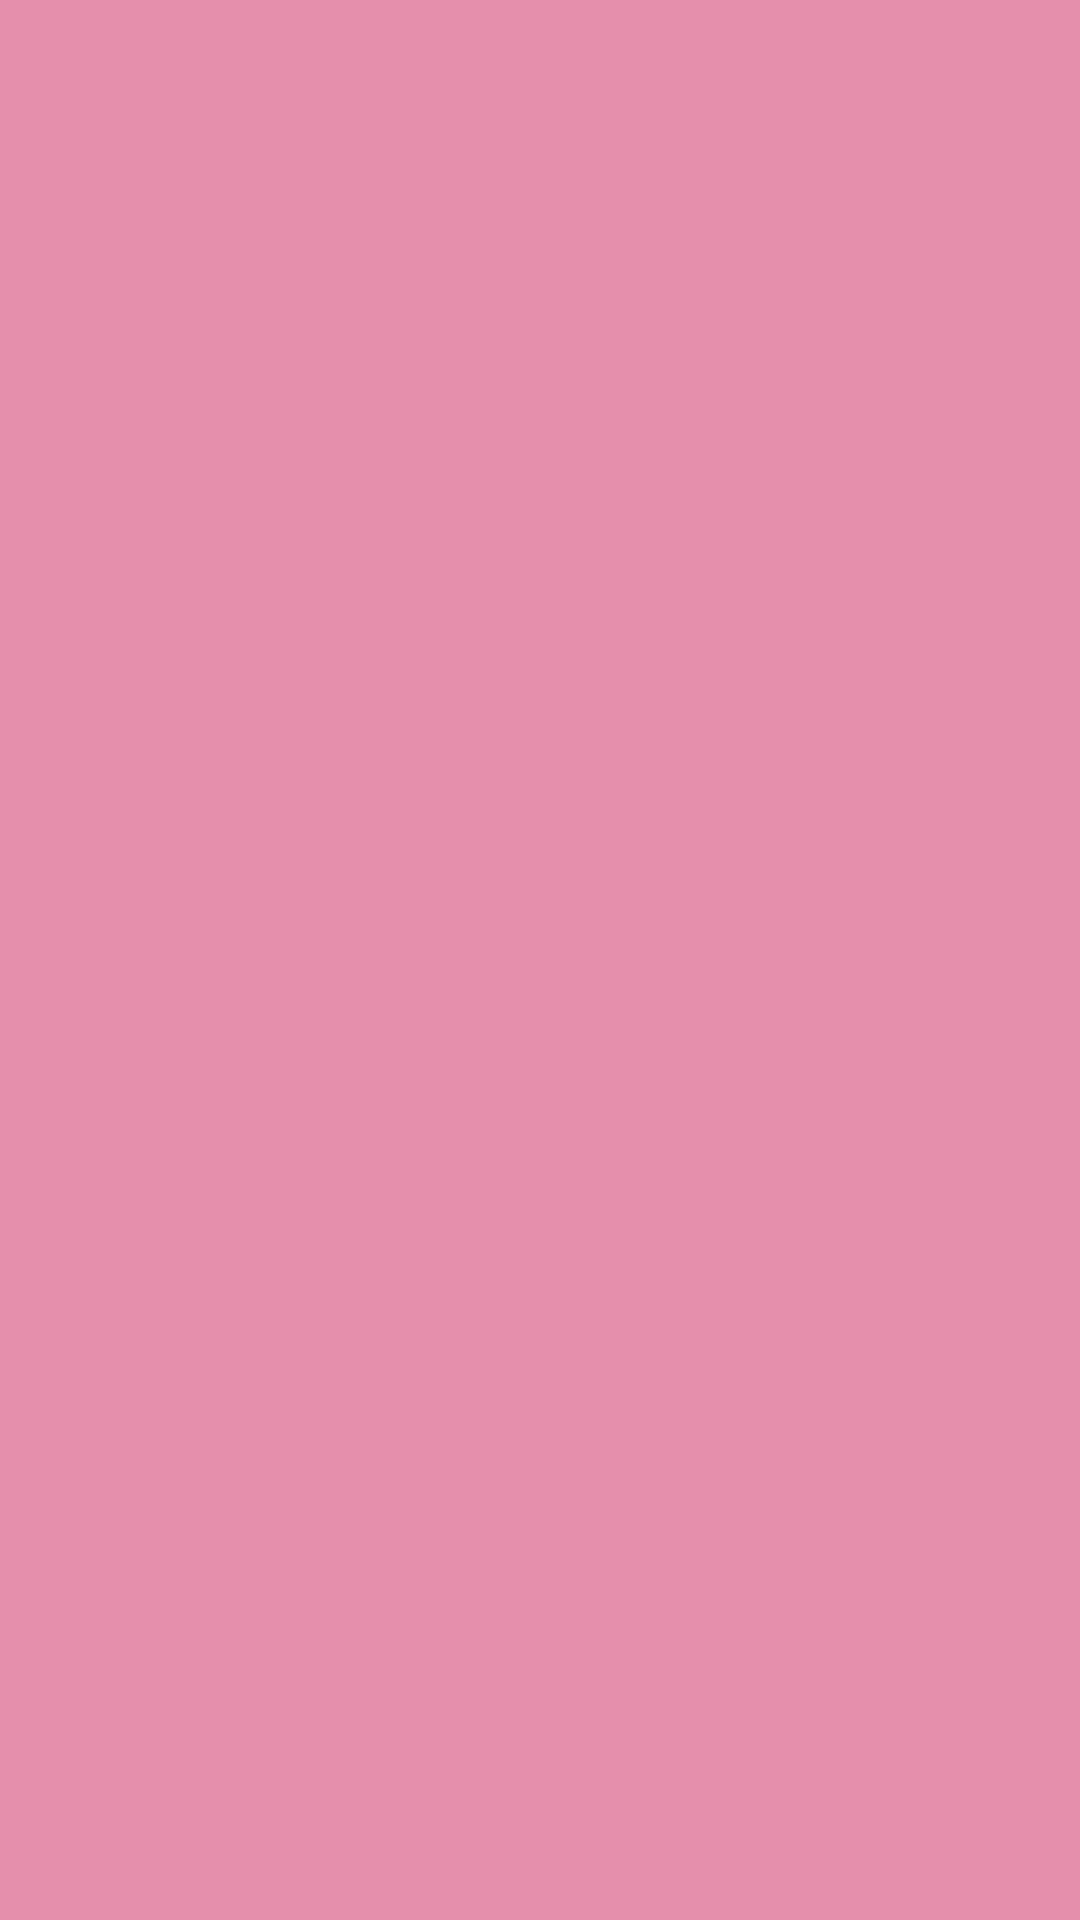 1080x1920 Light Thulian Pink Solid Color Background